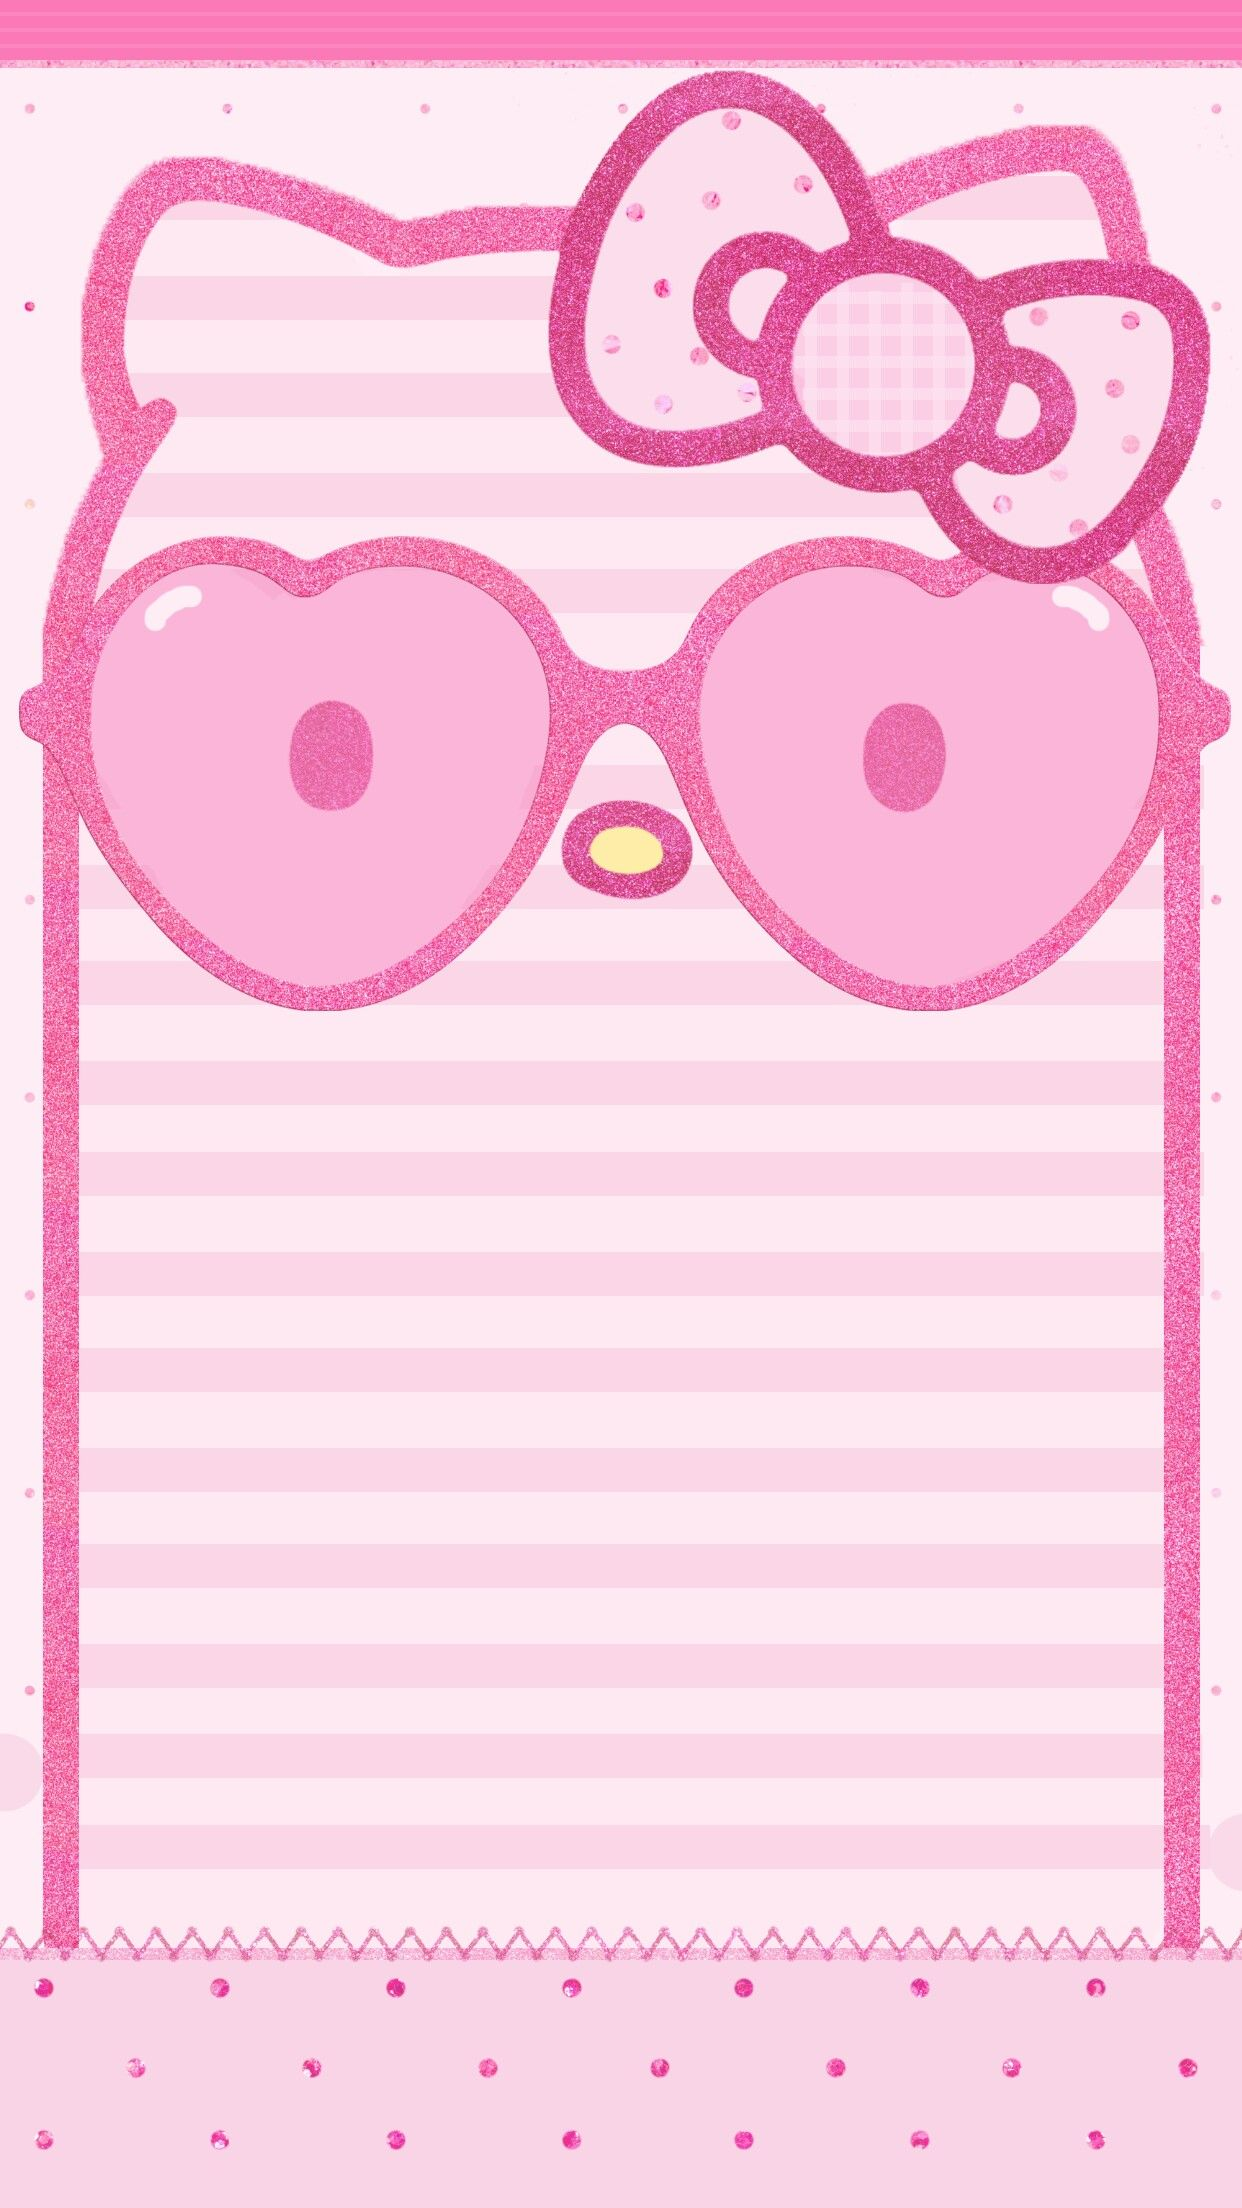 Wonderful Wallpaper Hello Kitty Pastel - 2f239bb5d61bd73dc4e6e9b41777efd3  Graphic_1007024.jpg